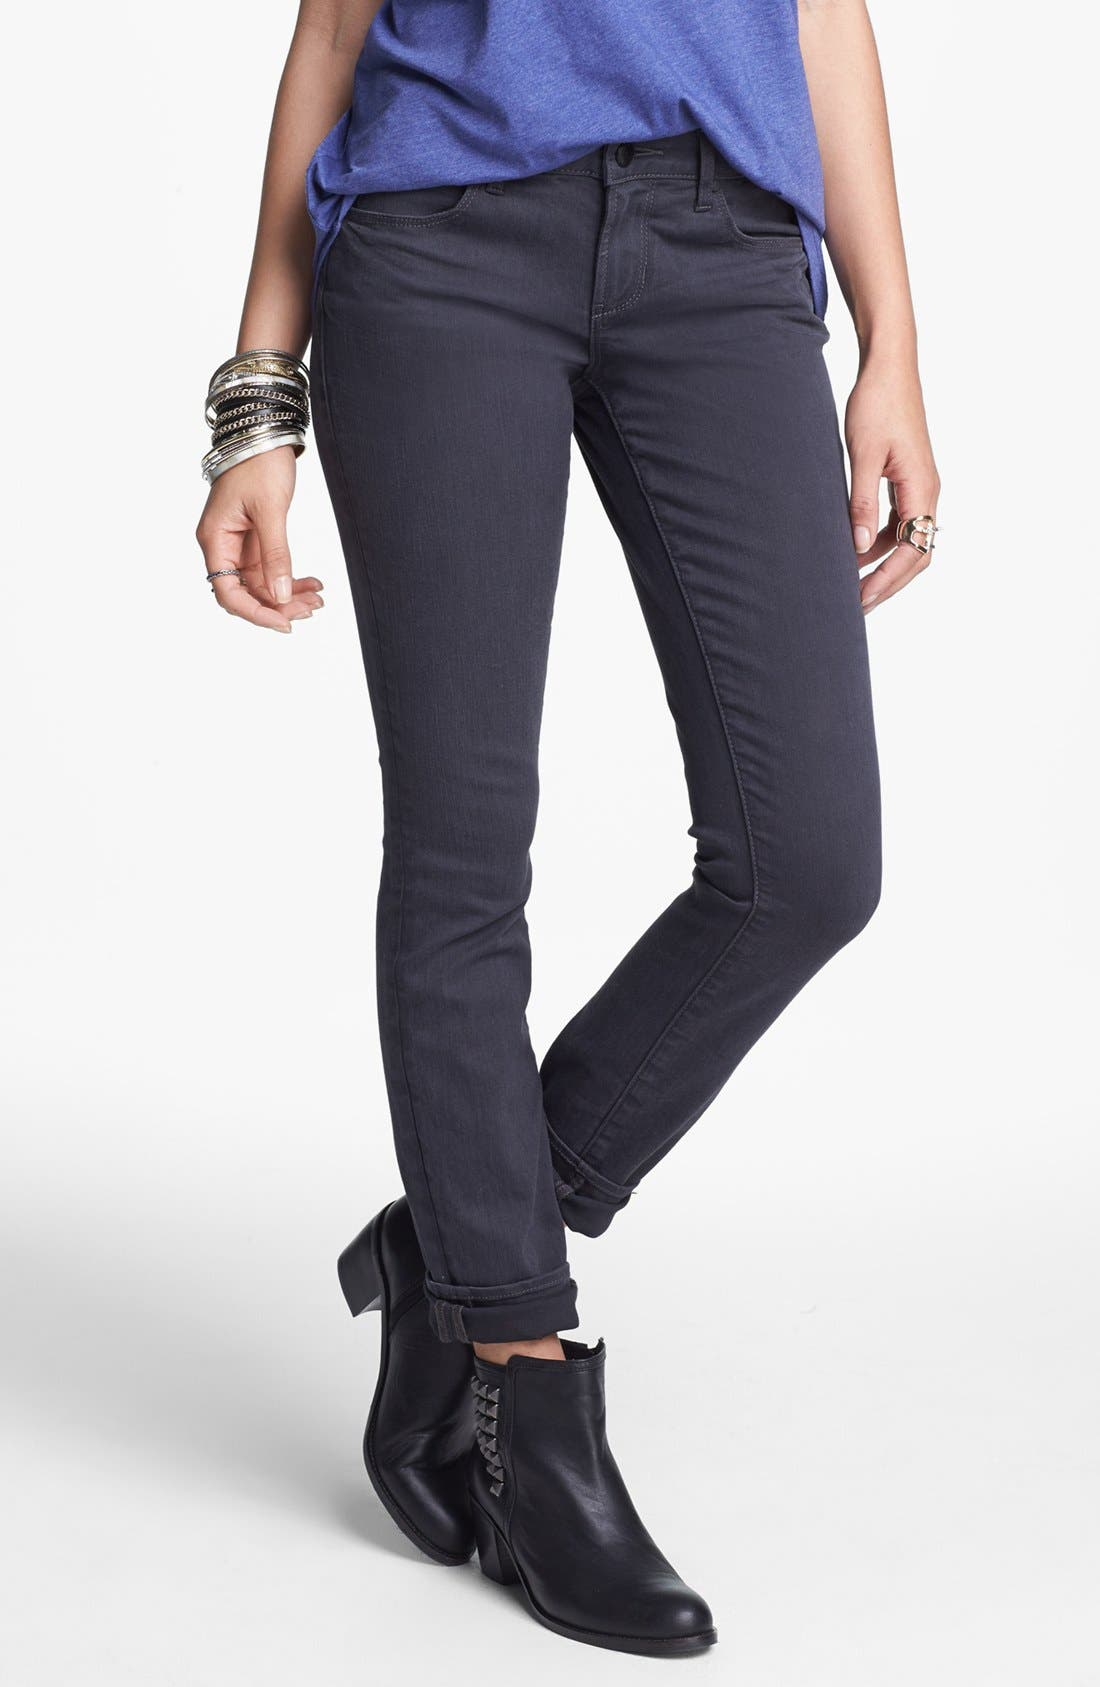 Main Image - Articles of Society 'Mya' Stretch Skinny Jeans (Charcoal) (Juniors)